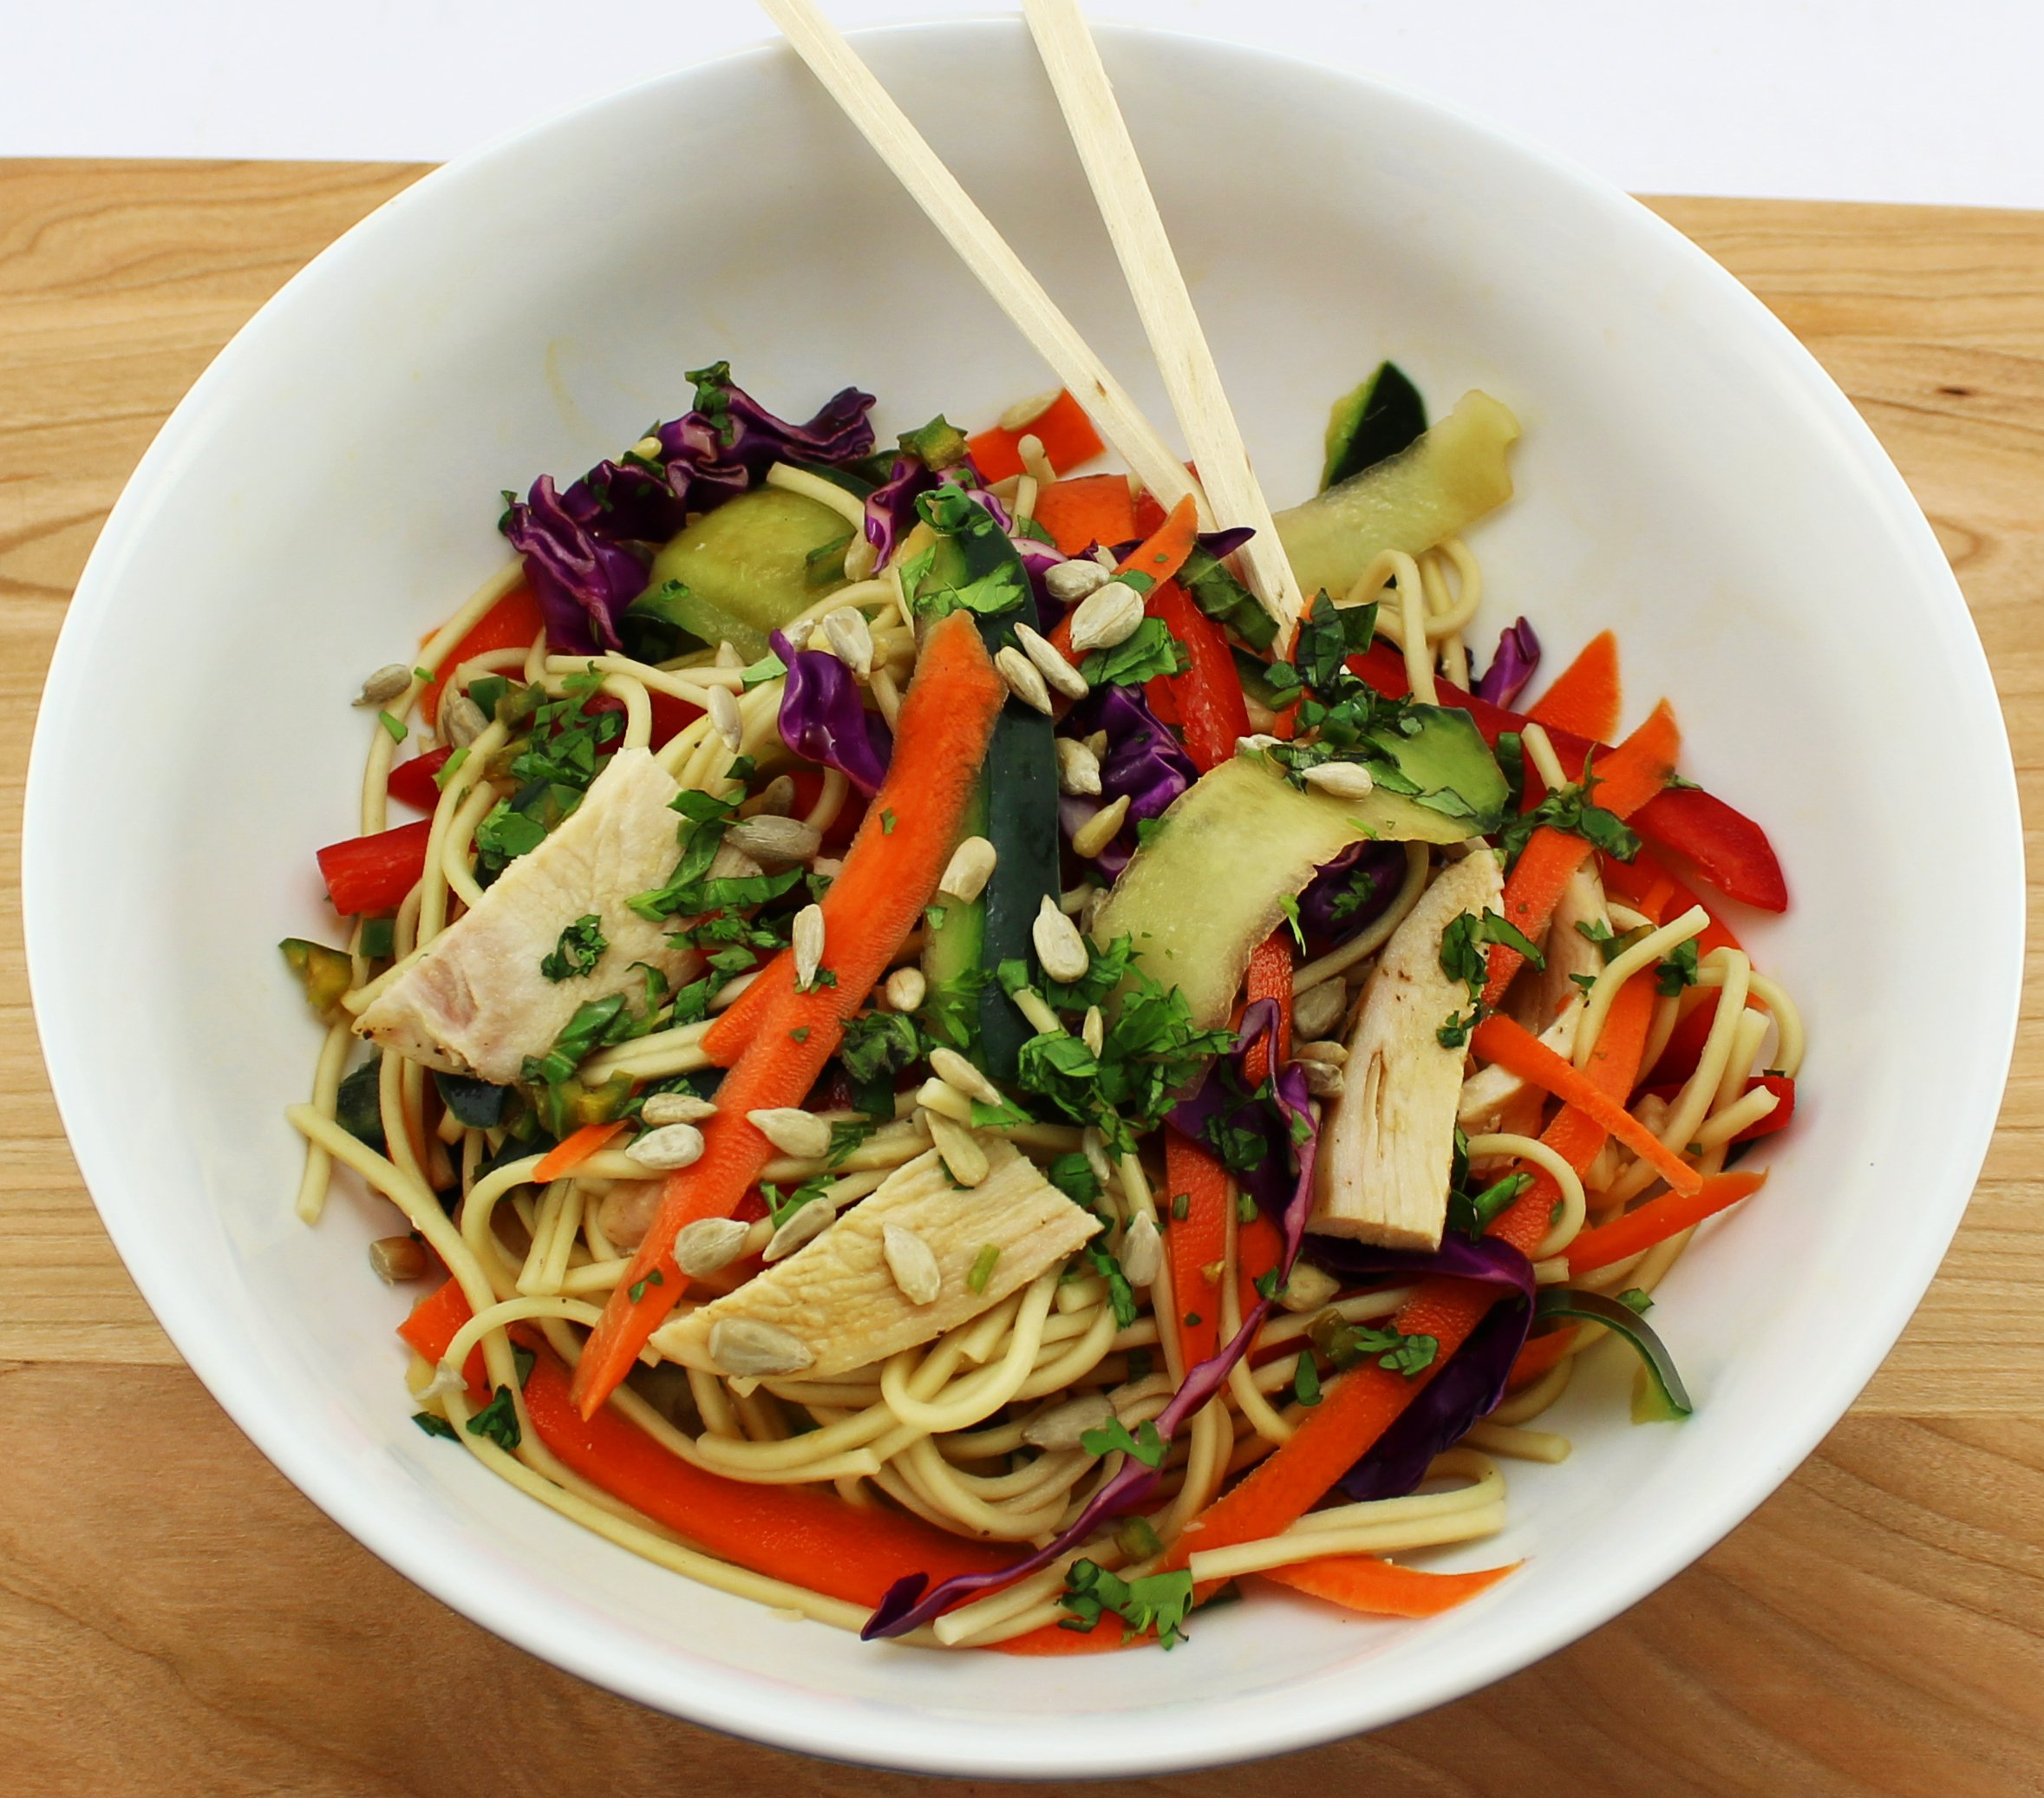 Weight Watcher friendly Asian Noodle Salad that is easy to make with fresh ingredients! Perfect for a grab on the go meal and only 6 SmartPoints.